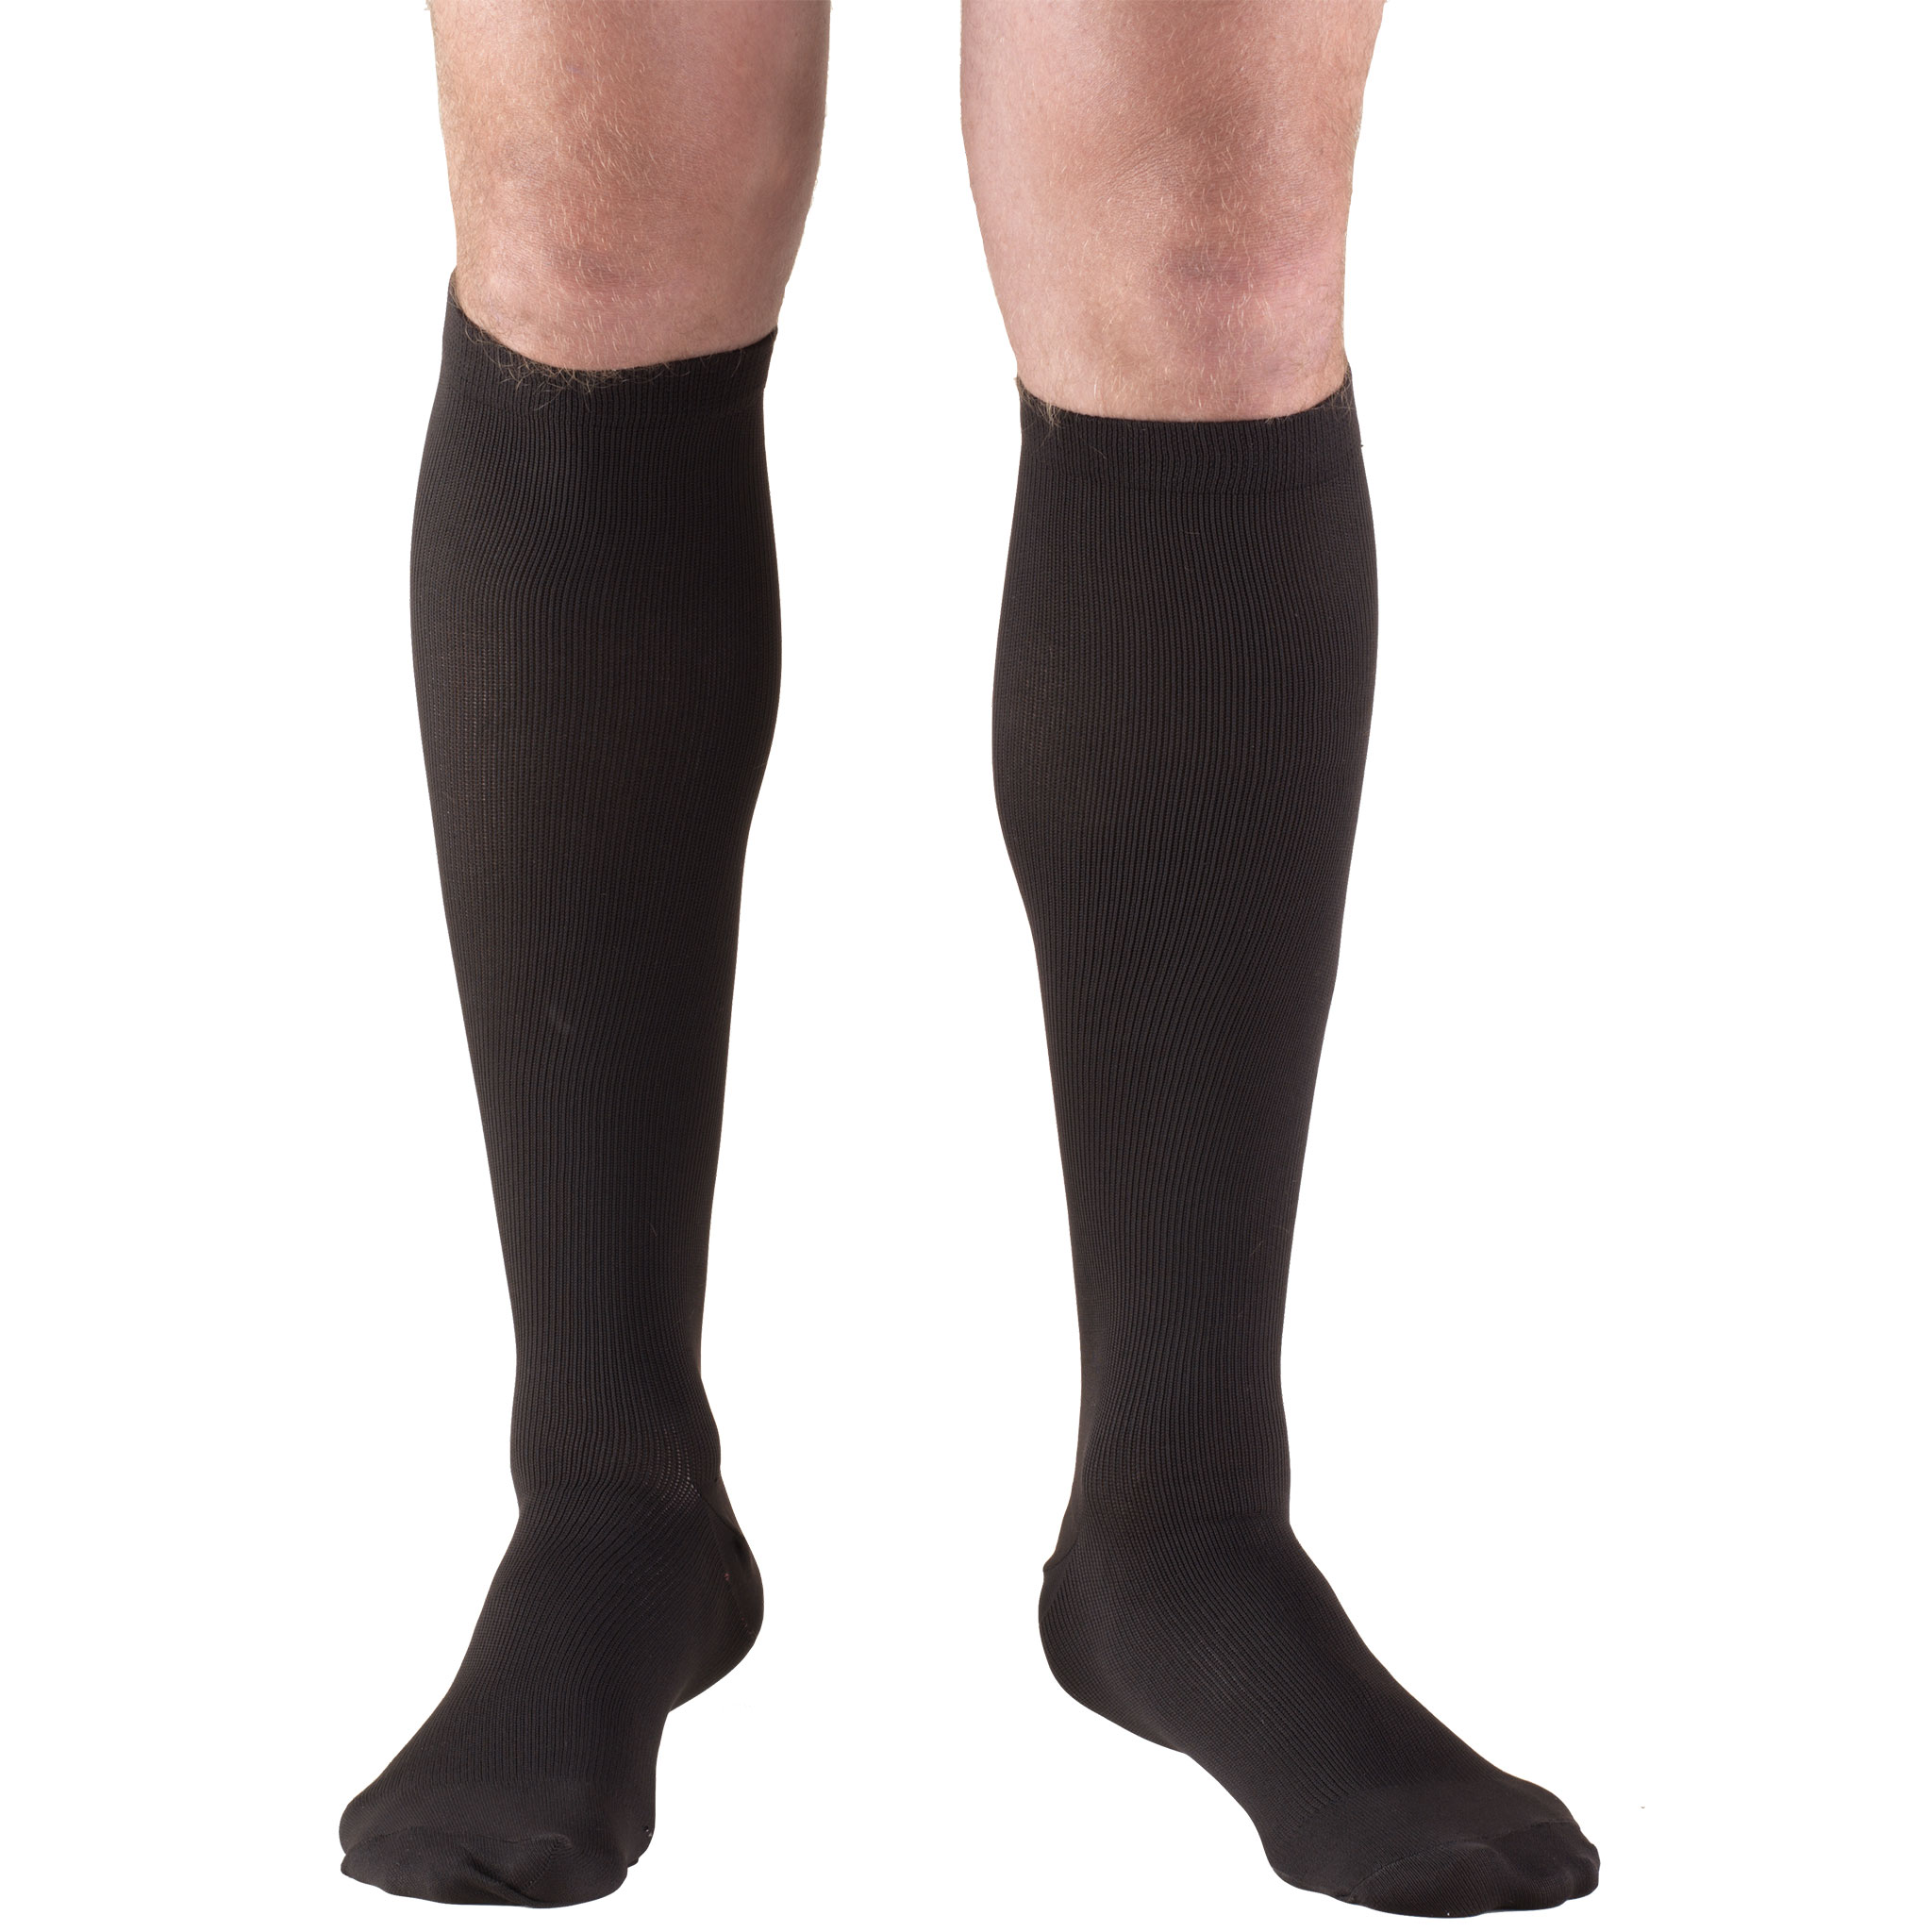 TruForm TruForm  Socks, 1 ea